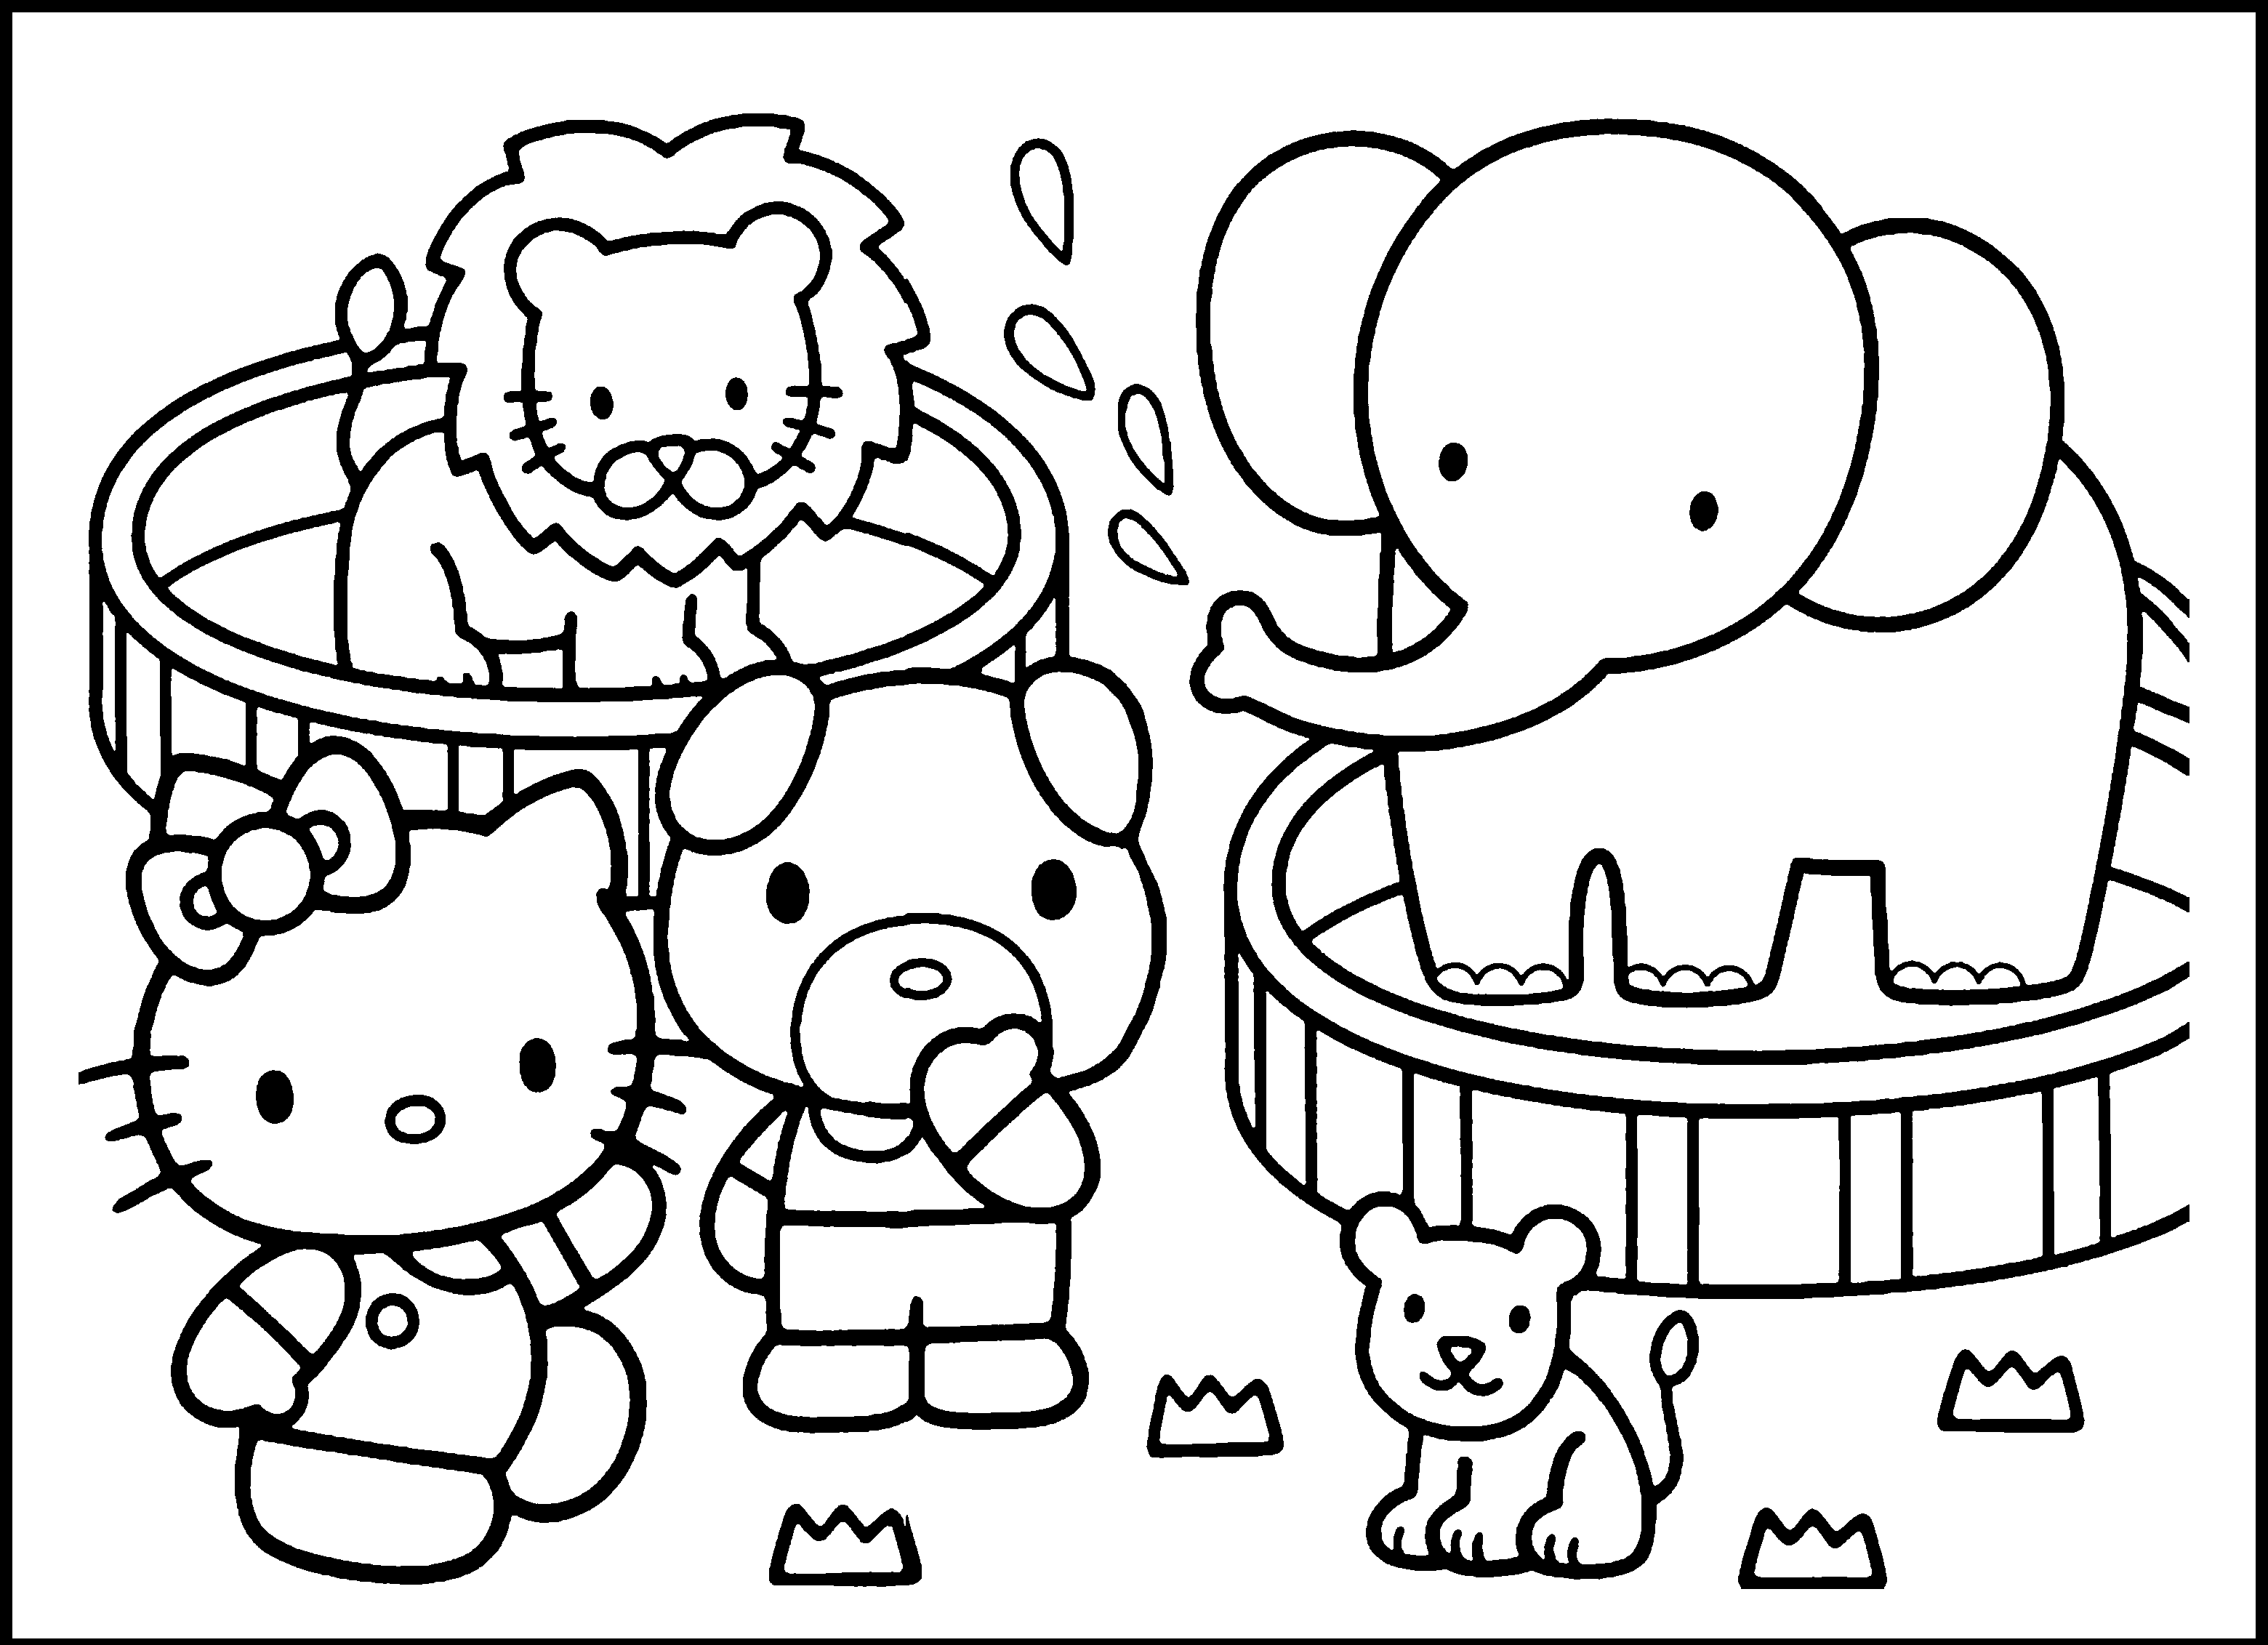 Zoo Animals Coloring Pages For Kindergarten : Preschool zoo coloring pages home